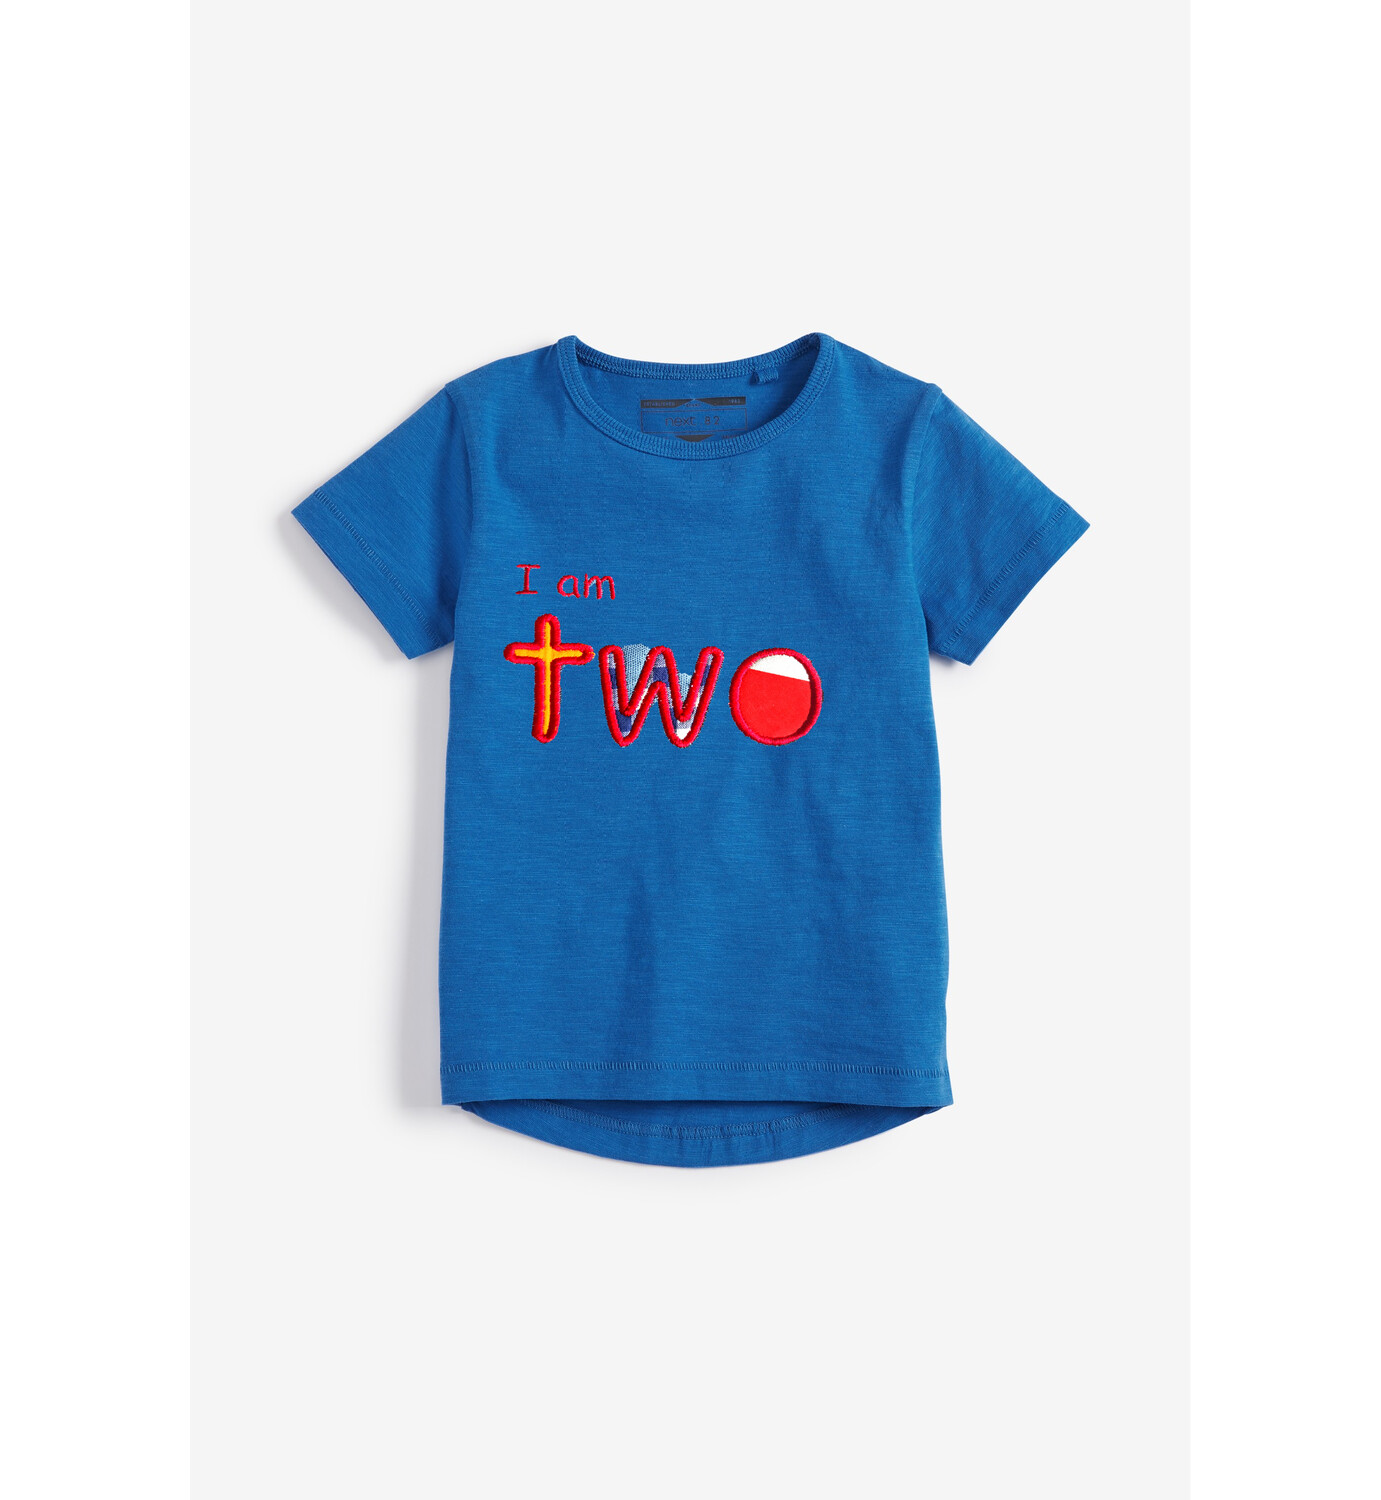 I am two Personalized Embroidered Short Sleeve Next Essential T-Shirt Cotton - 2nd Birthday (Front and Back design)